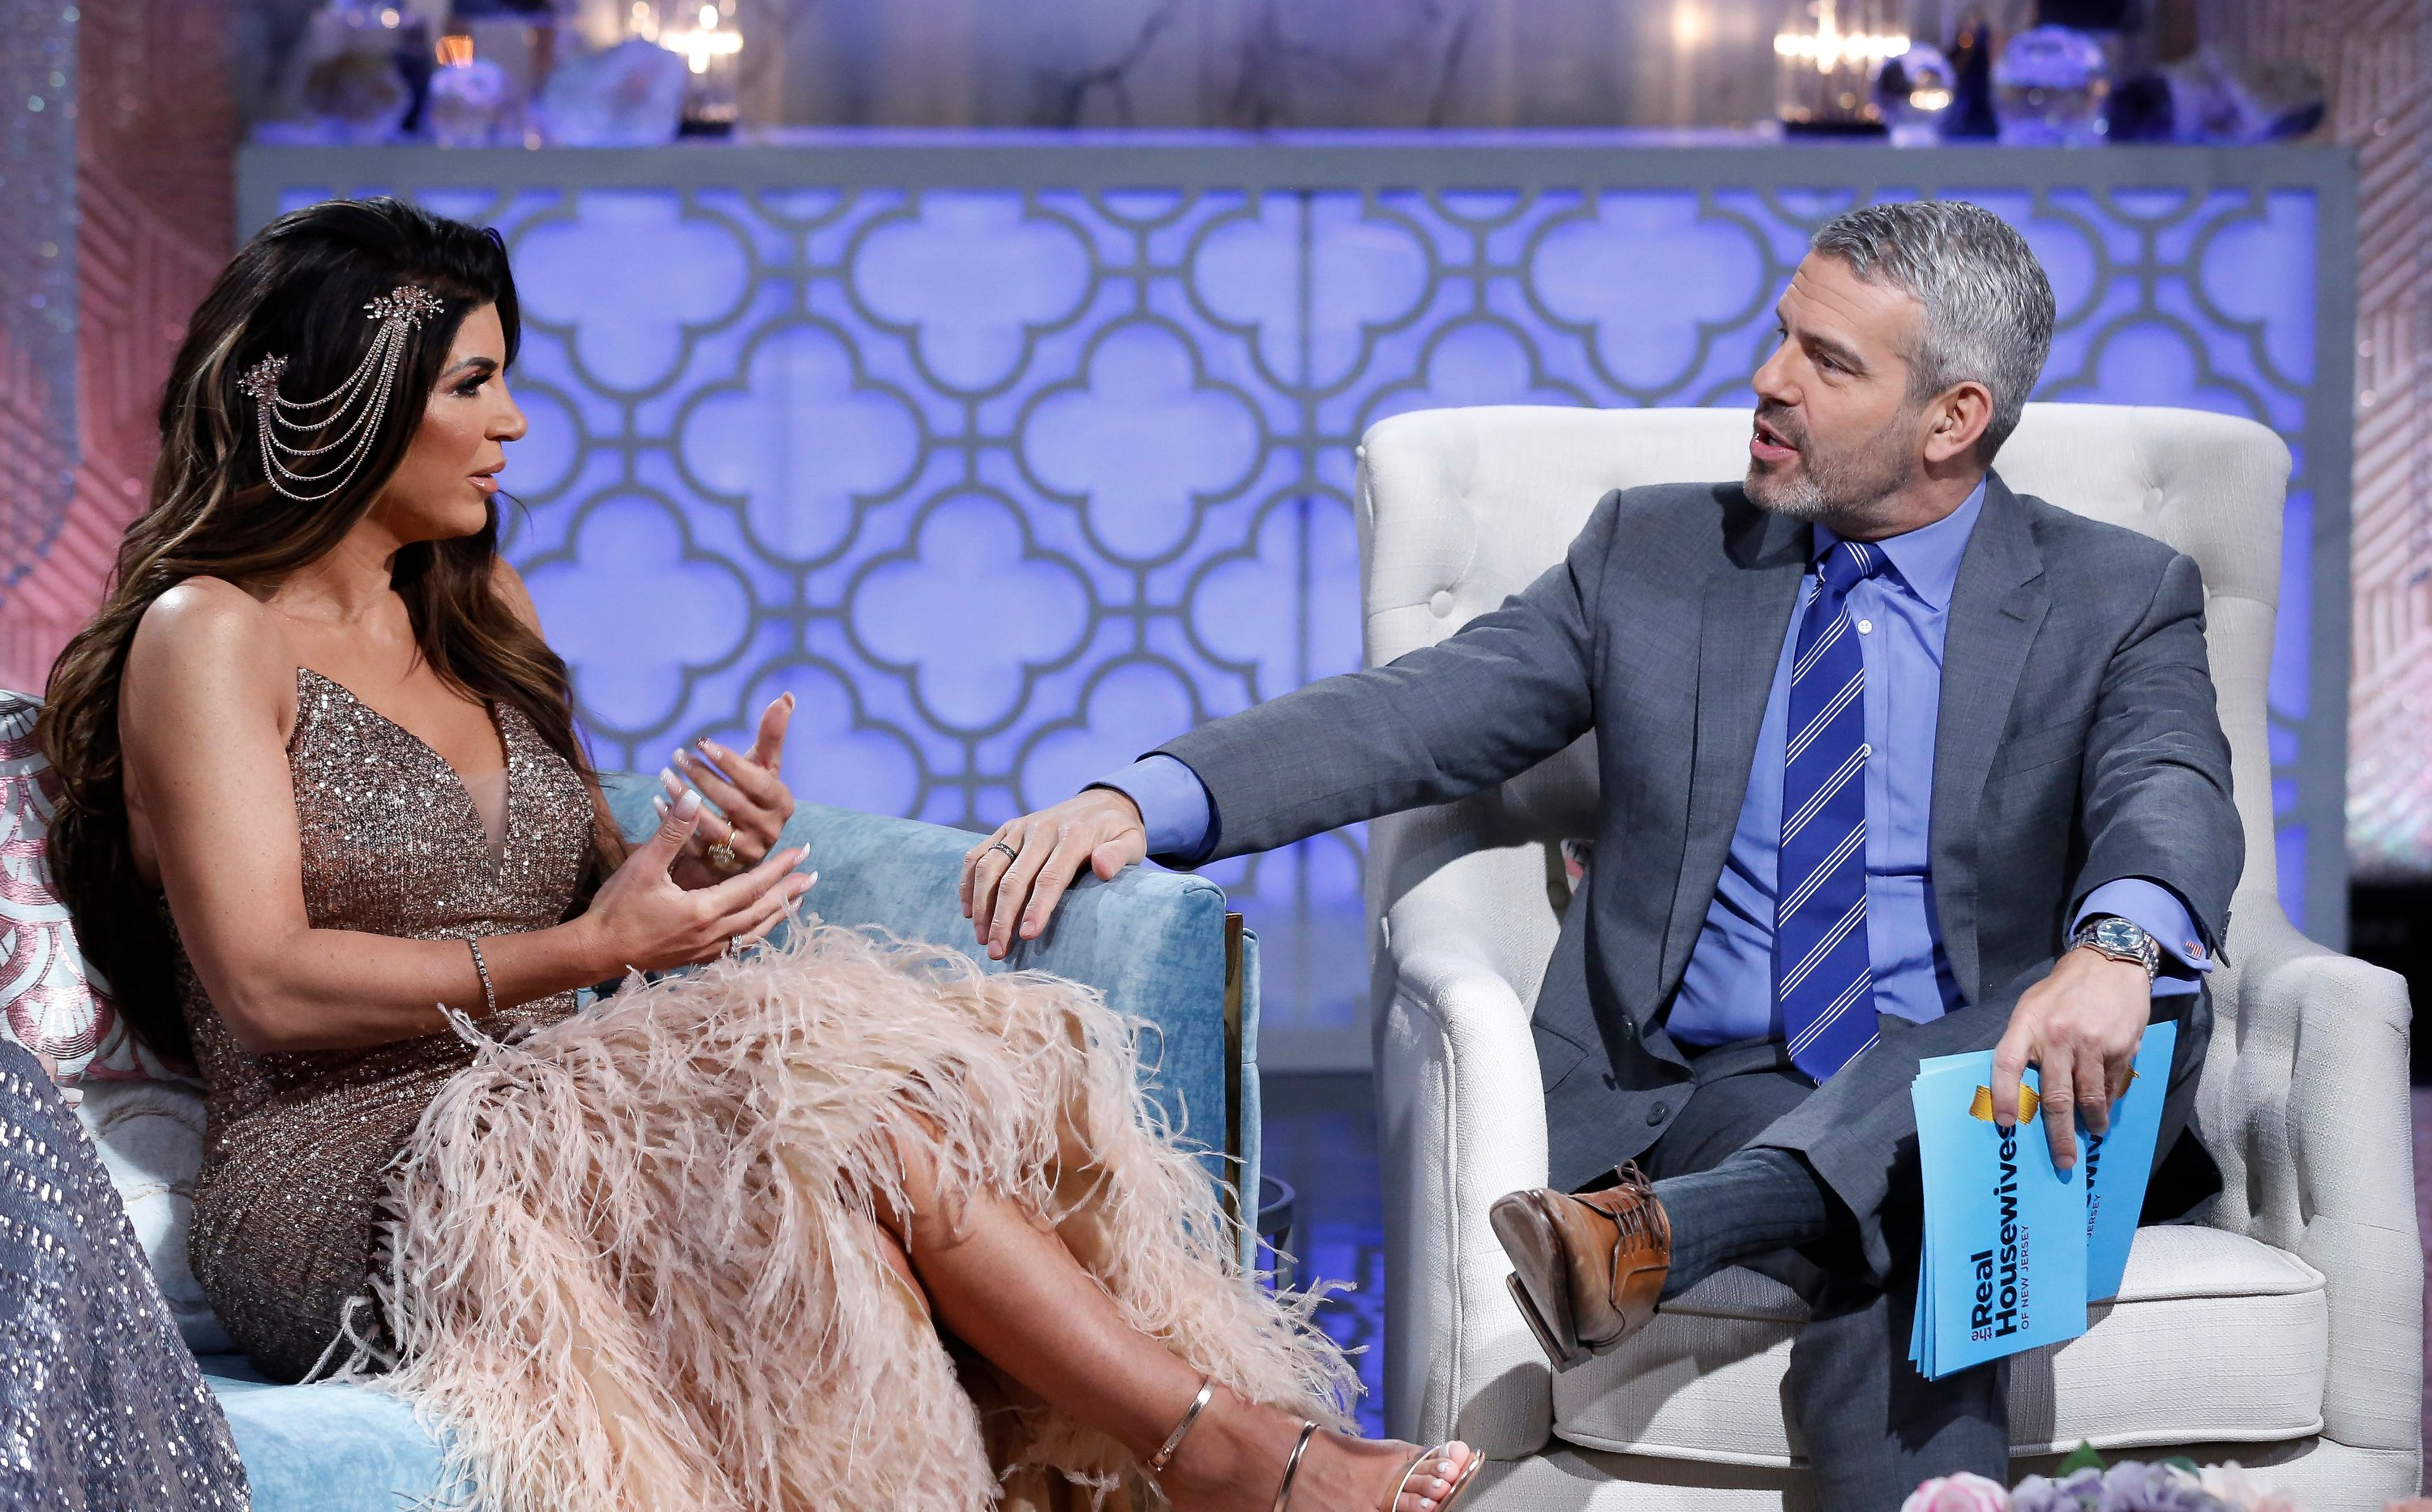 Andy Cohen shares a moment with Teresa Giudice.